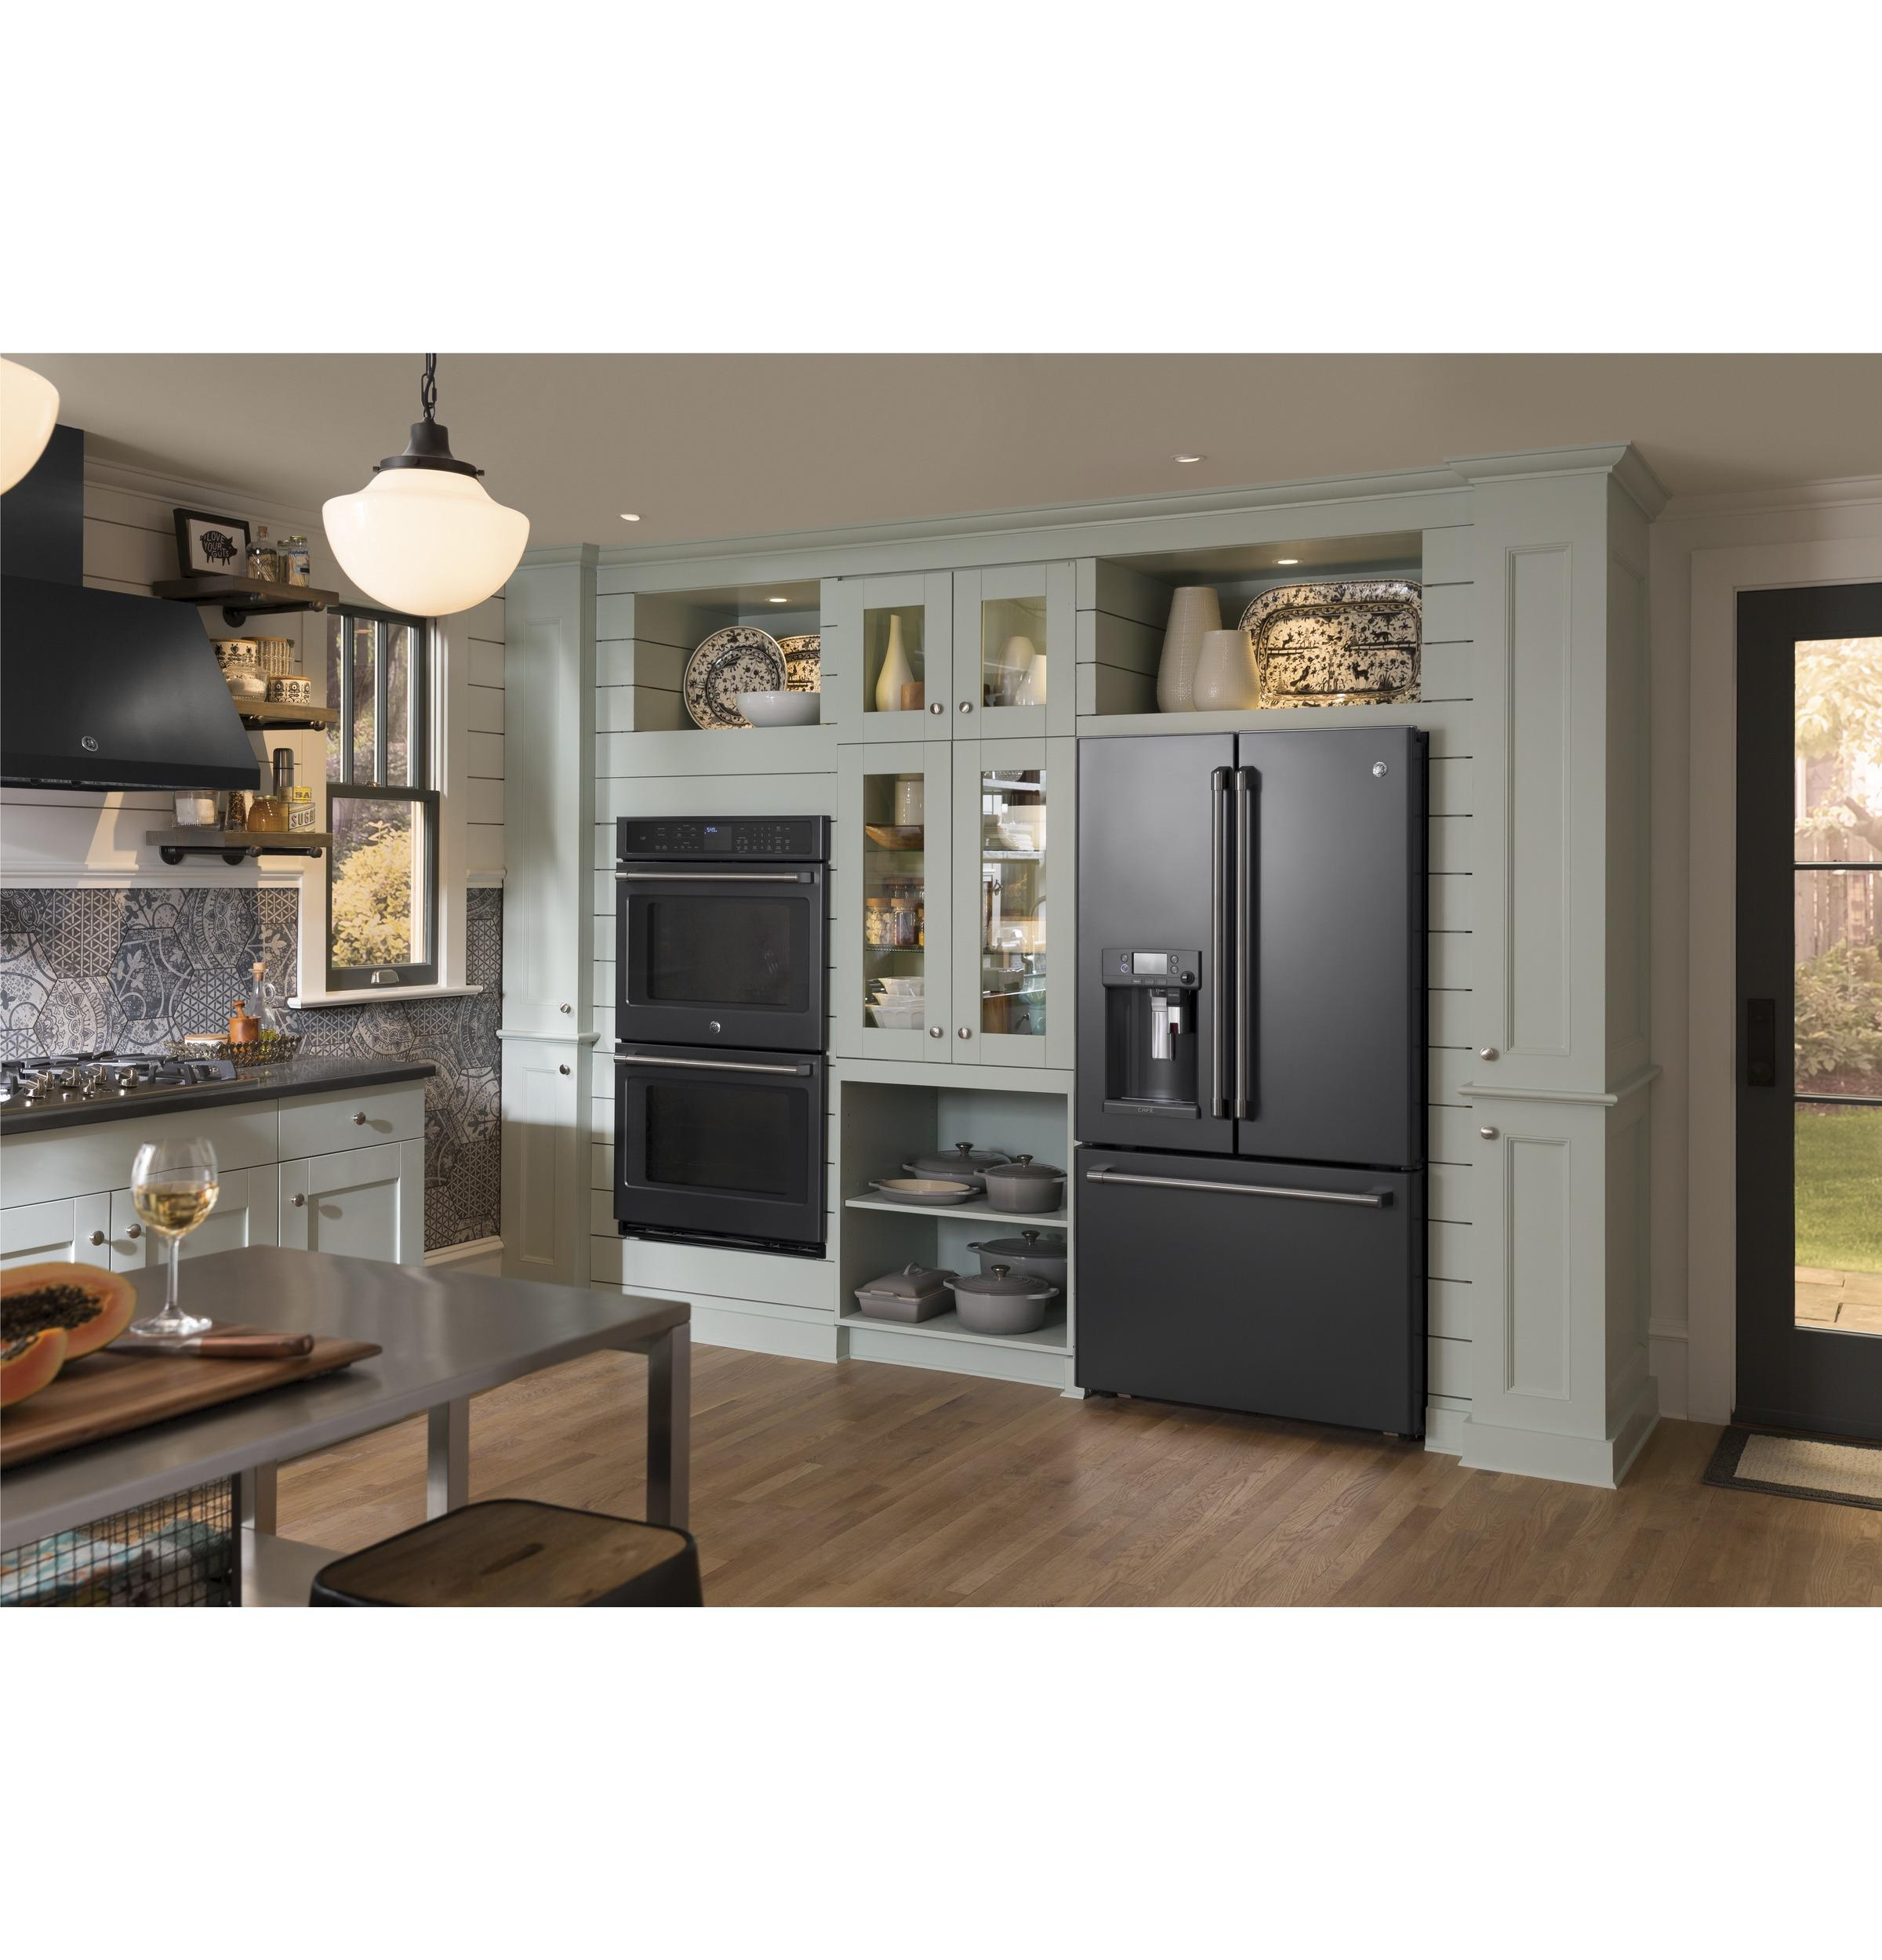 CYE22UELDS in Black Slate by GE Appliances in Erlanger KY GE Cafe